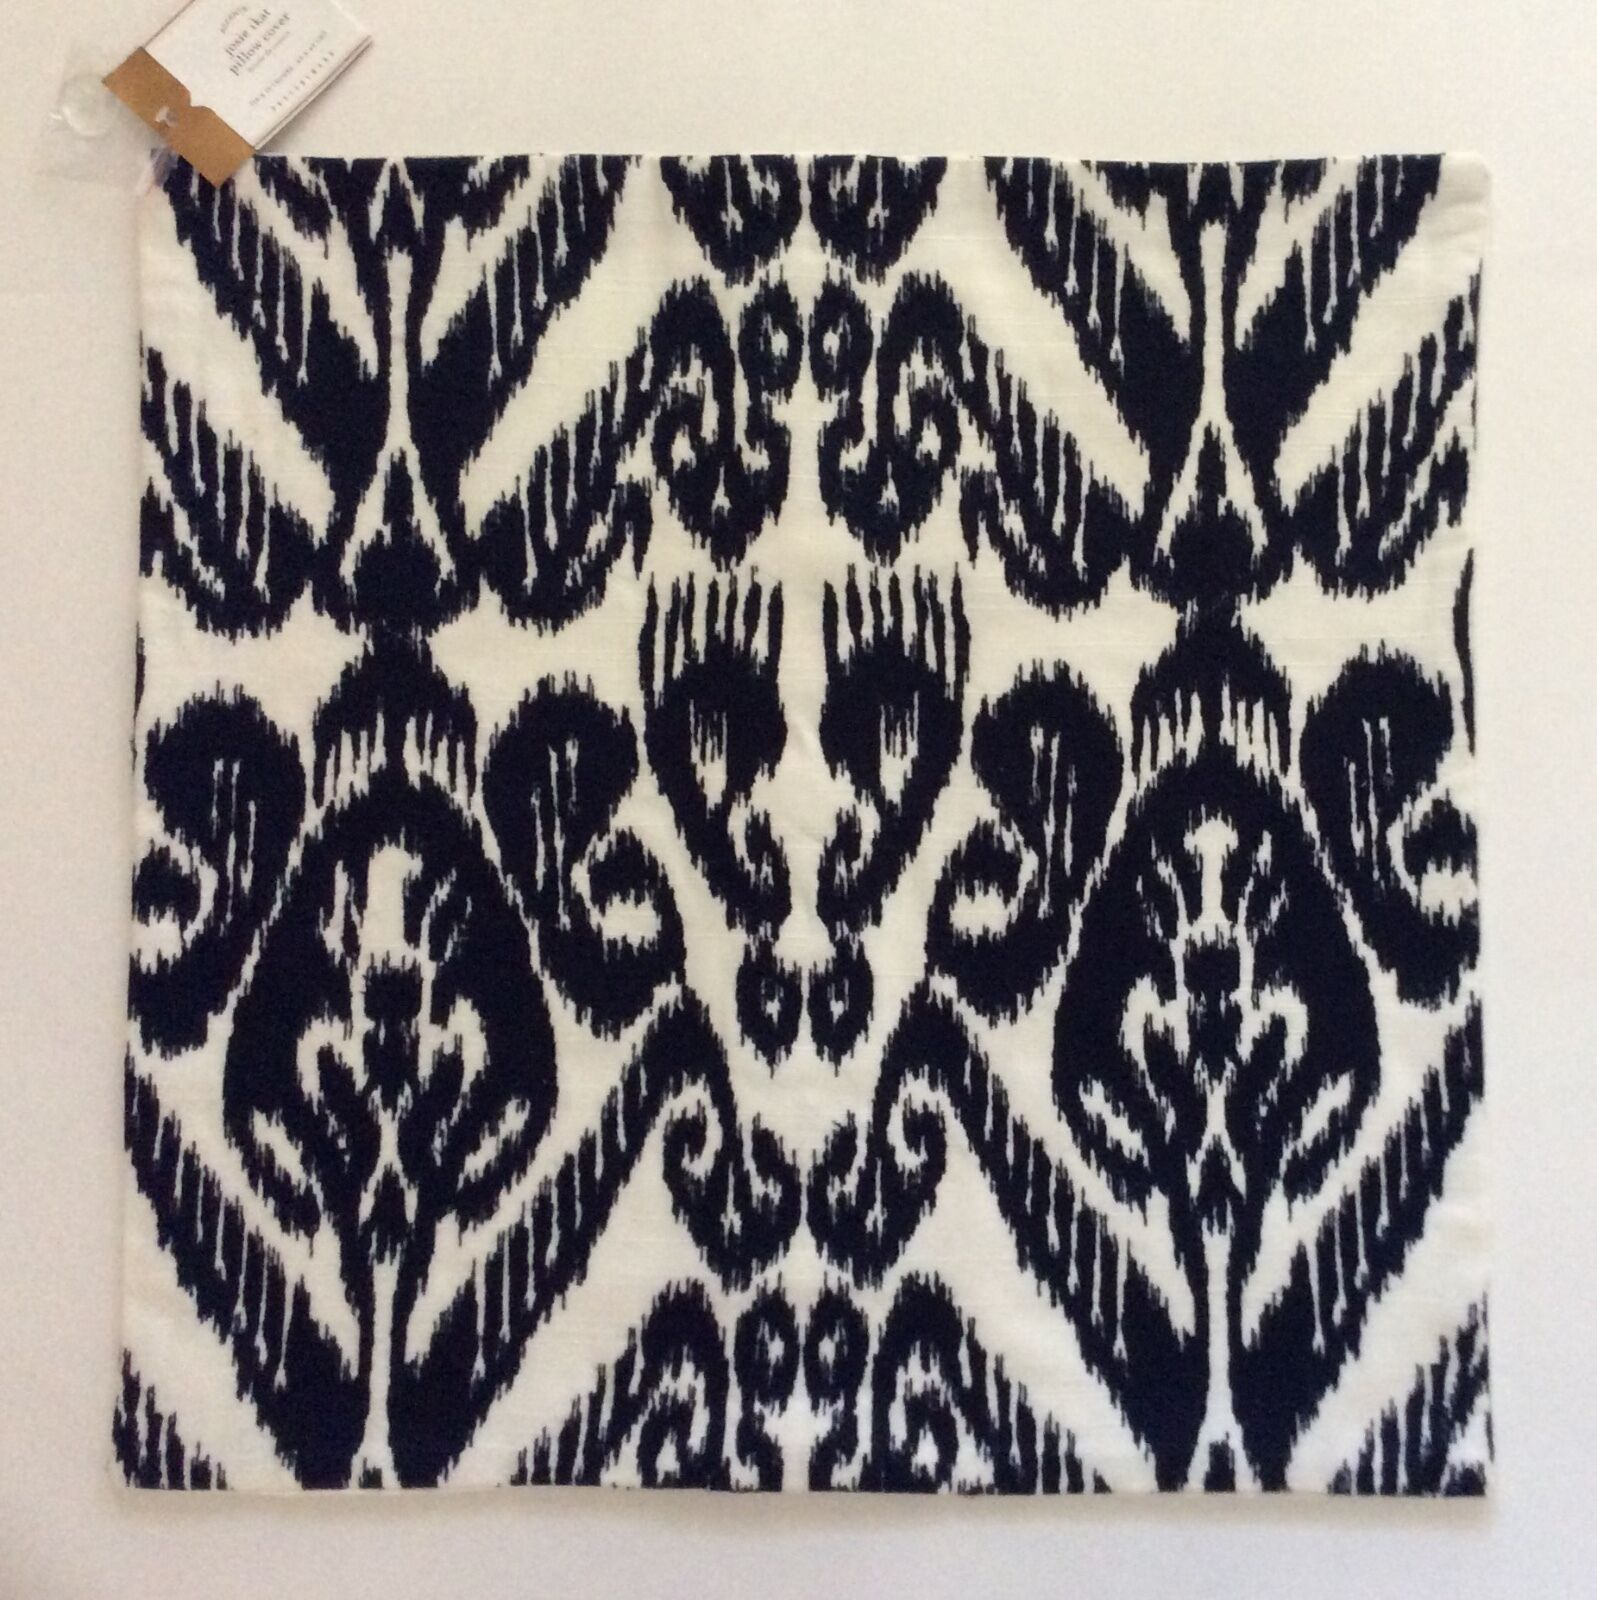 Pottery Barn JOSIE IKAT EMBROIDErosso PILLOW COVER  18x18   New with Tags